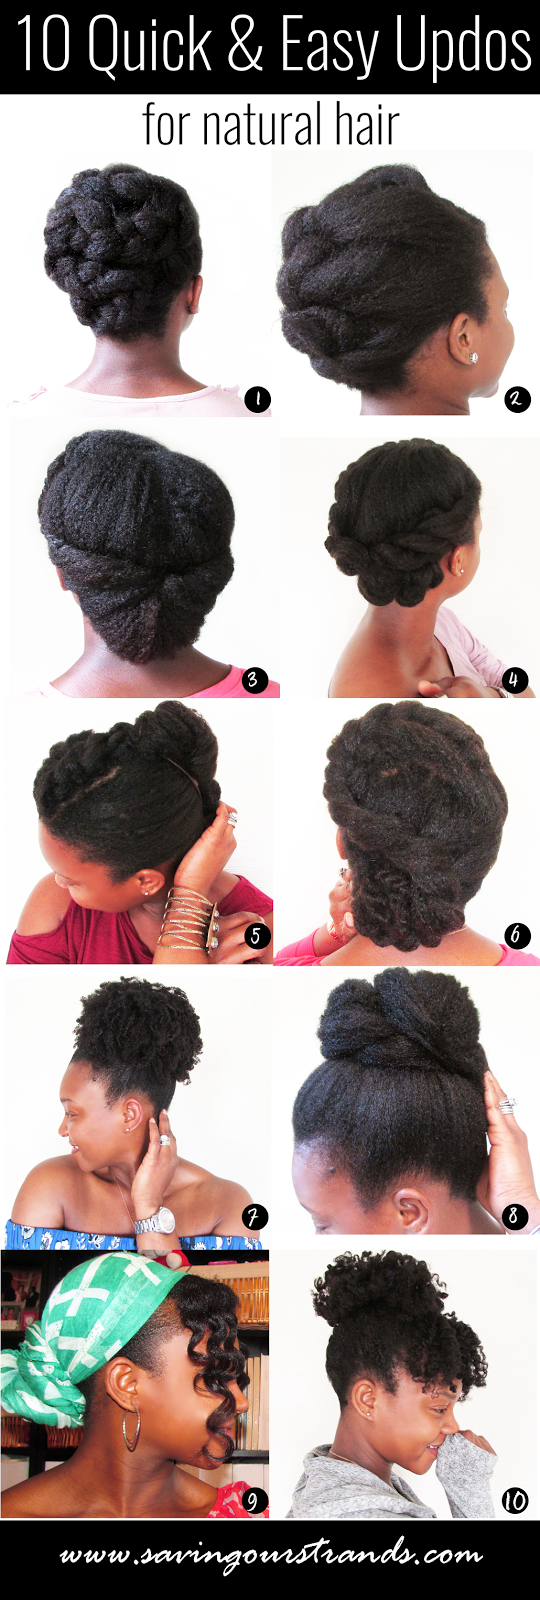 10 Quick And Easy Updos For Natural Hair Natural Hair Updo Hair